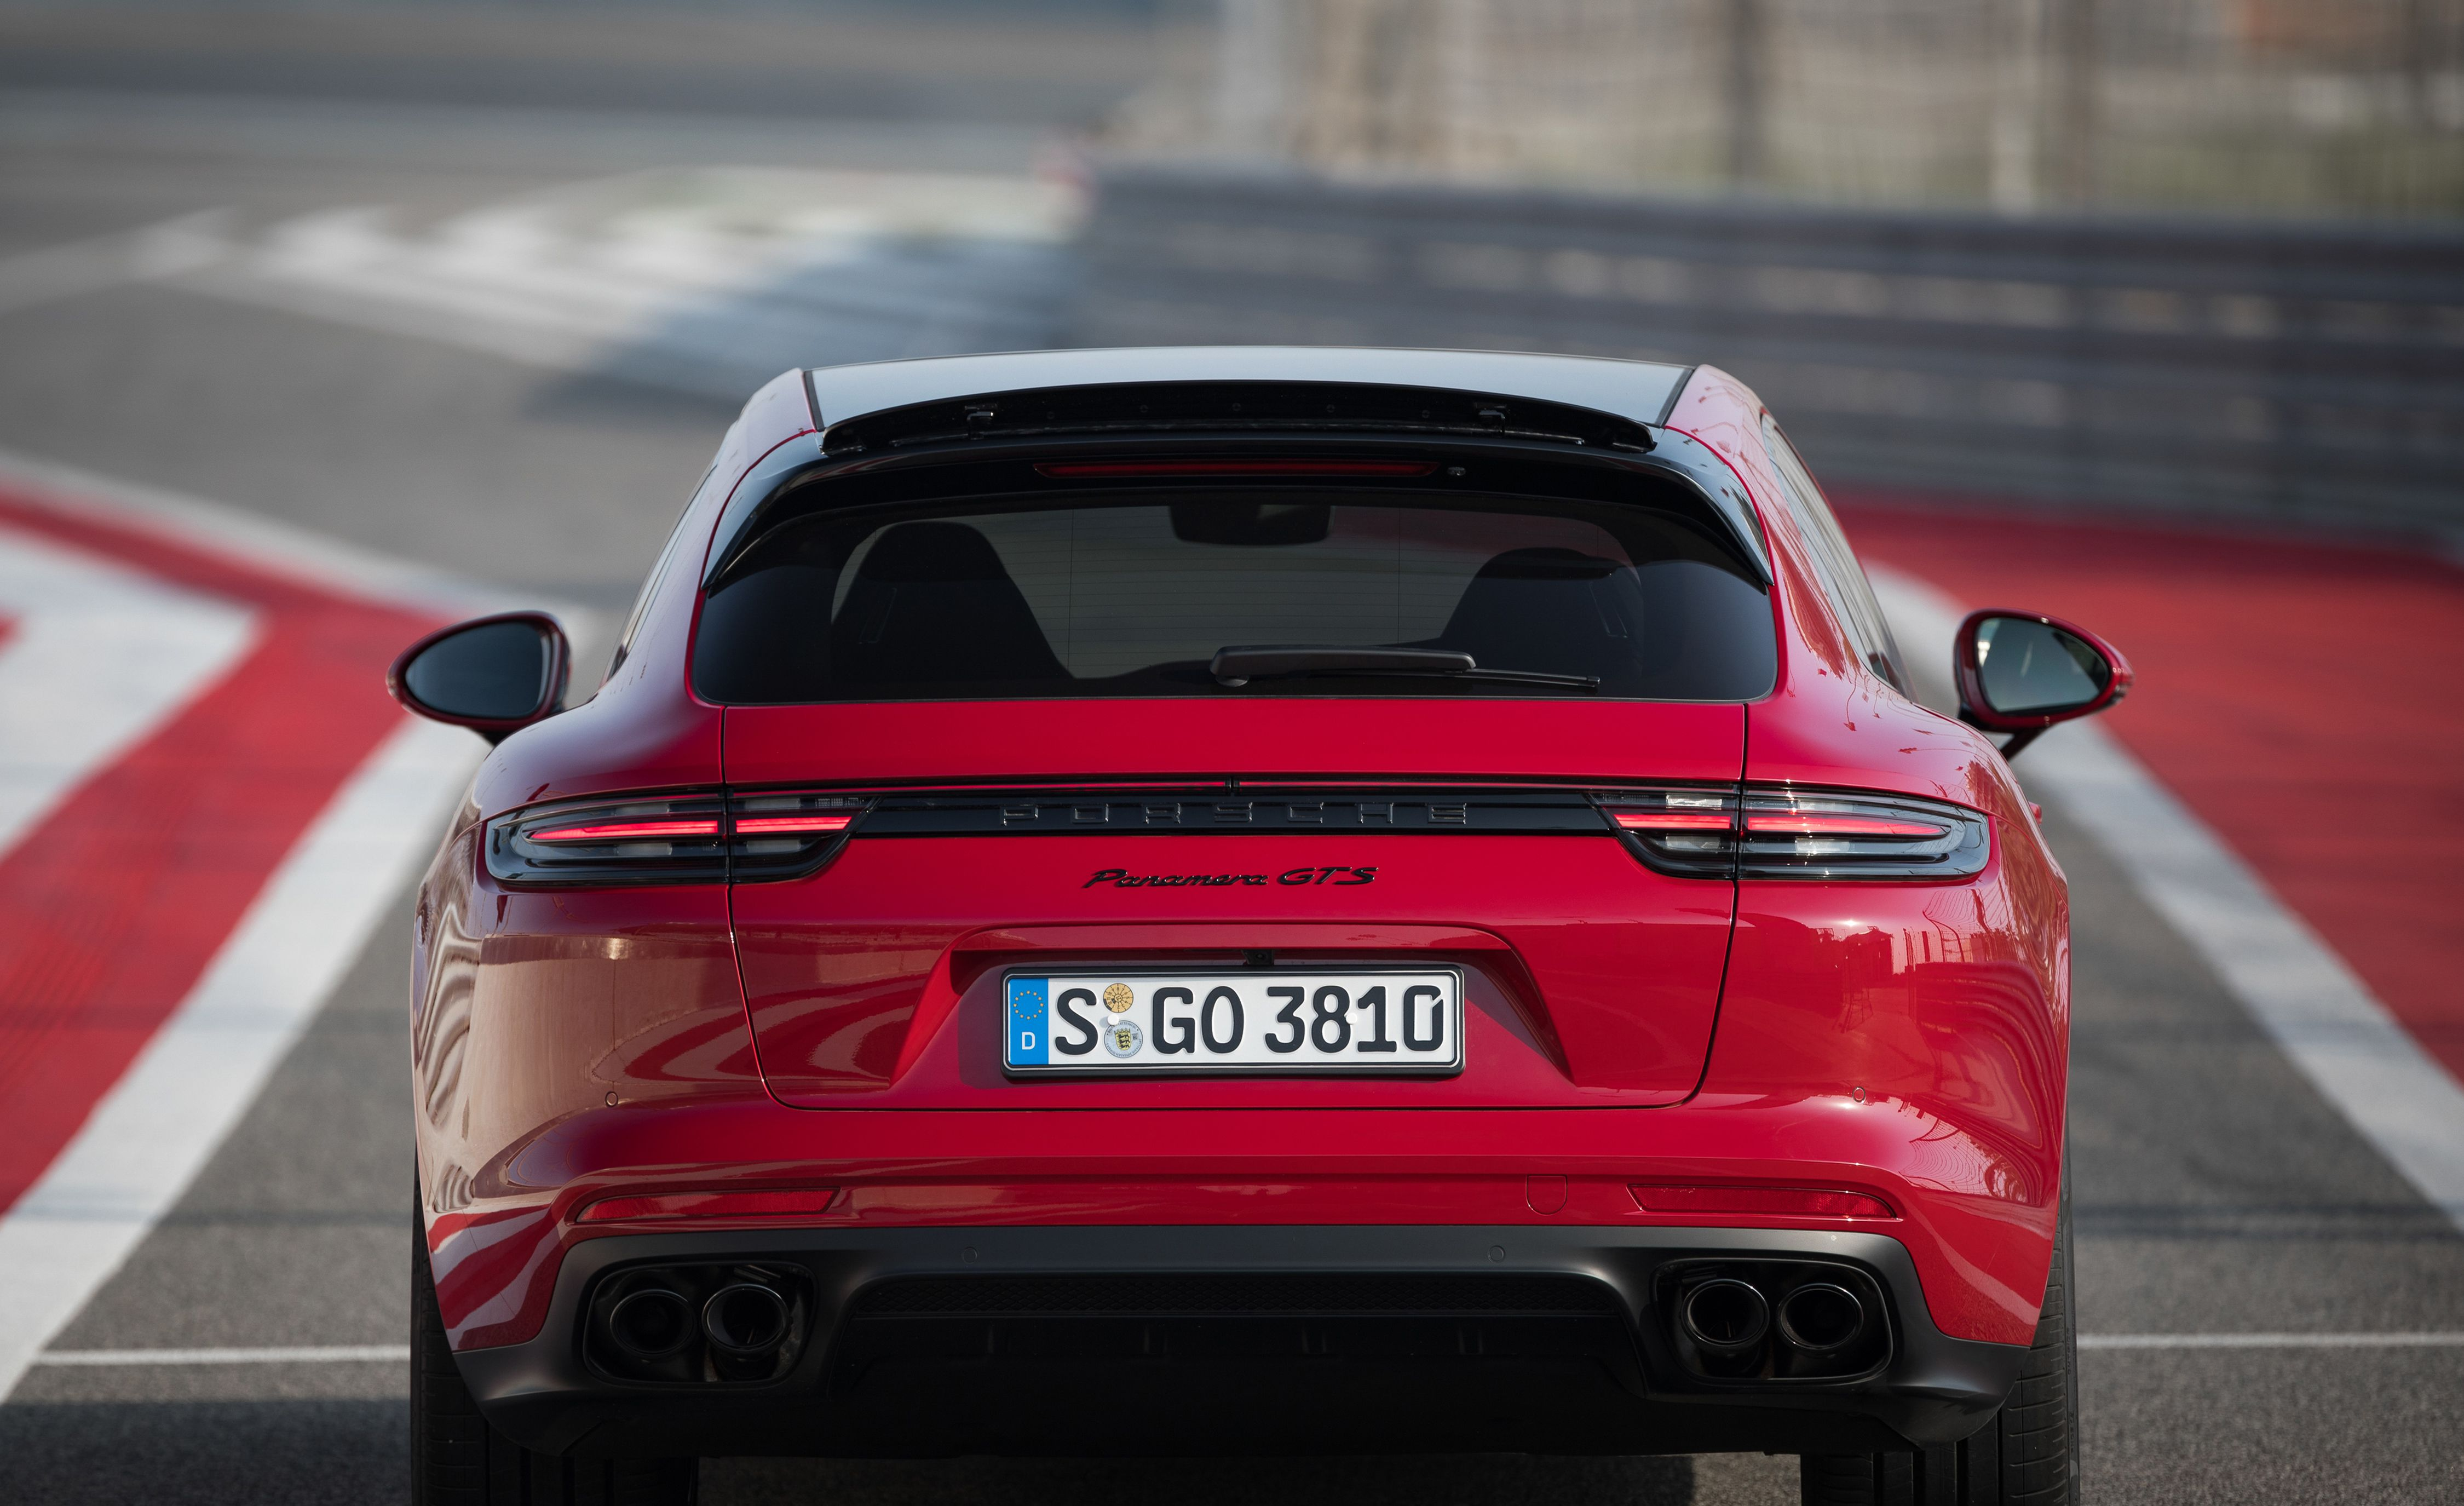 2019 Porsche Panamera GTS Sport Turismo Rear Wallpapers (10)